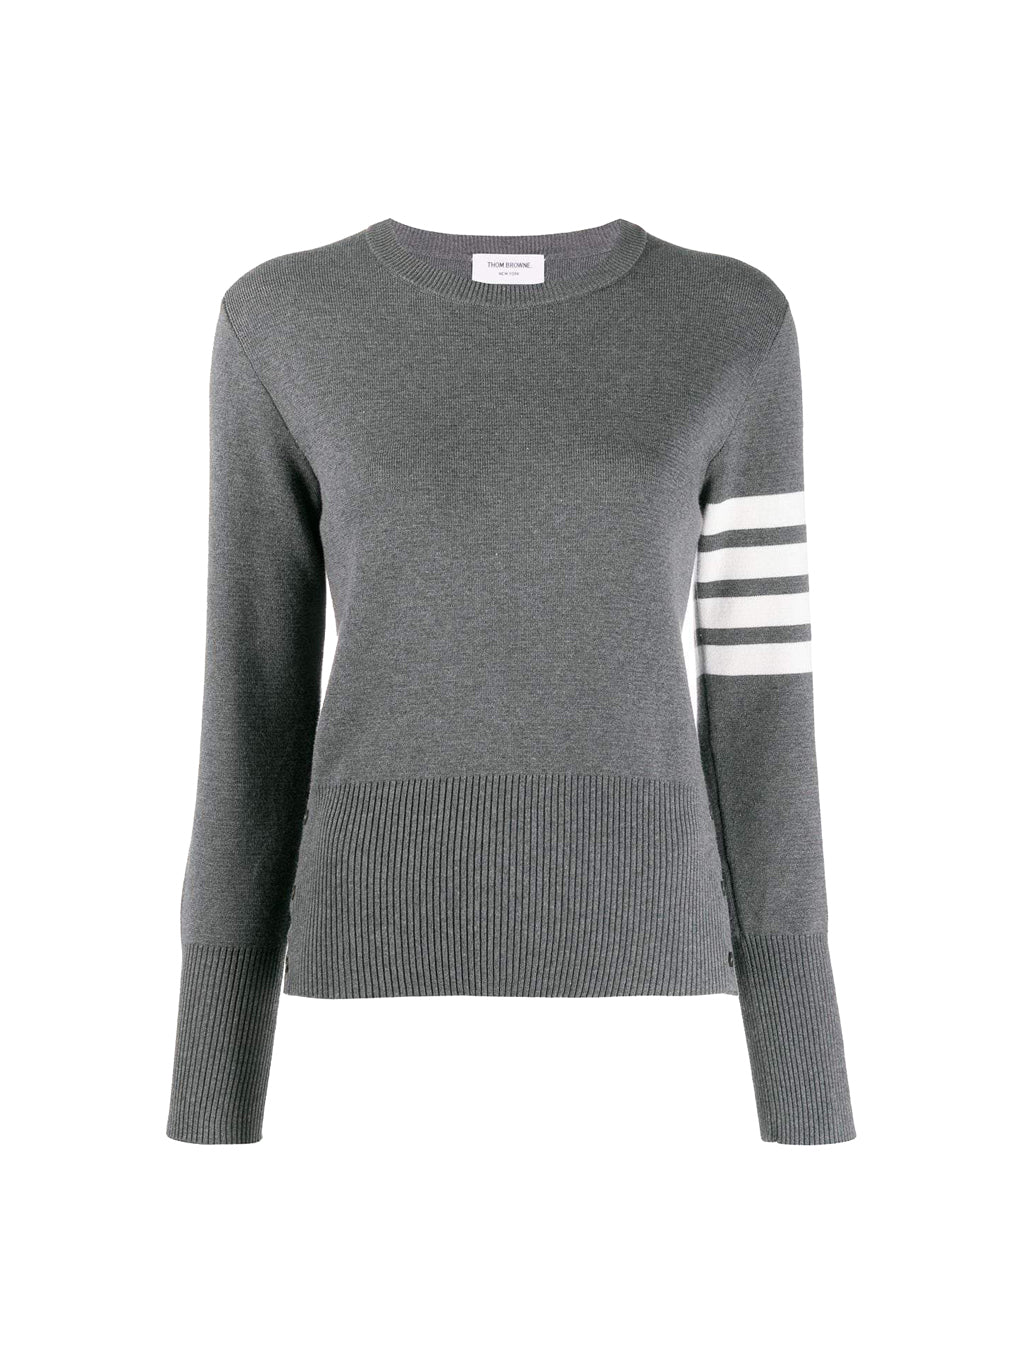 Medium Grey Milano Stitch Classic Crew Neck Cotton Crepe With 4 Bar Pullover